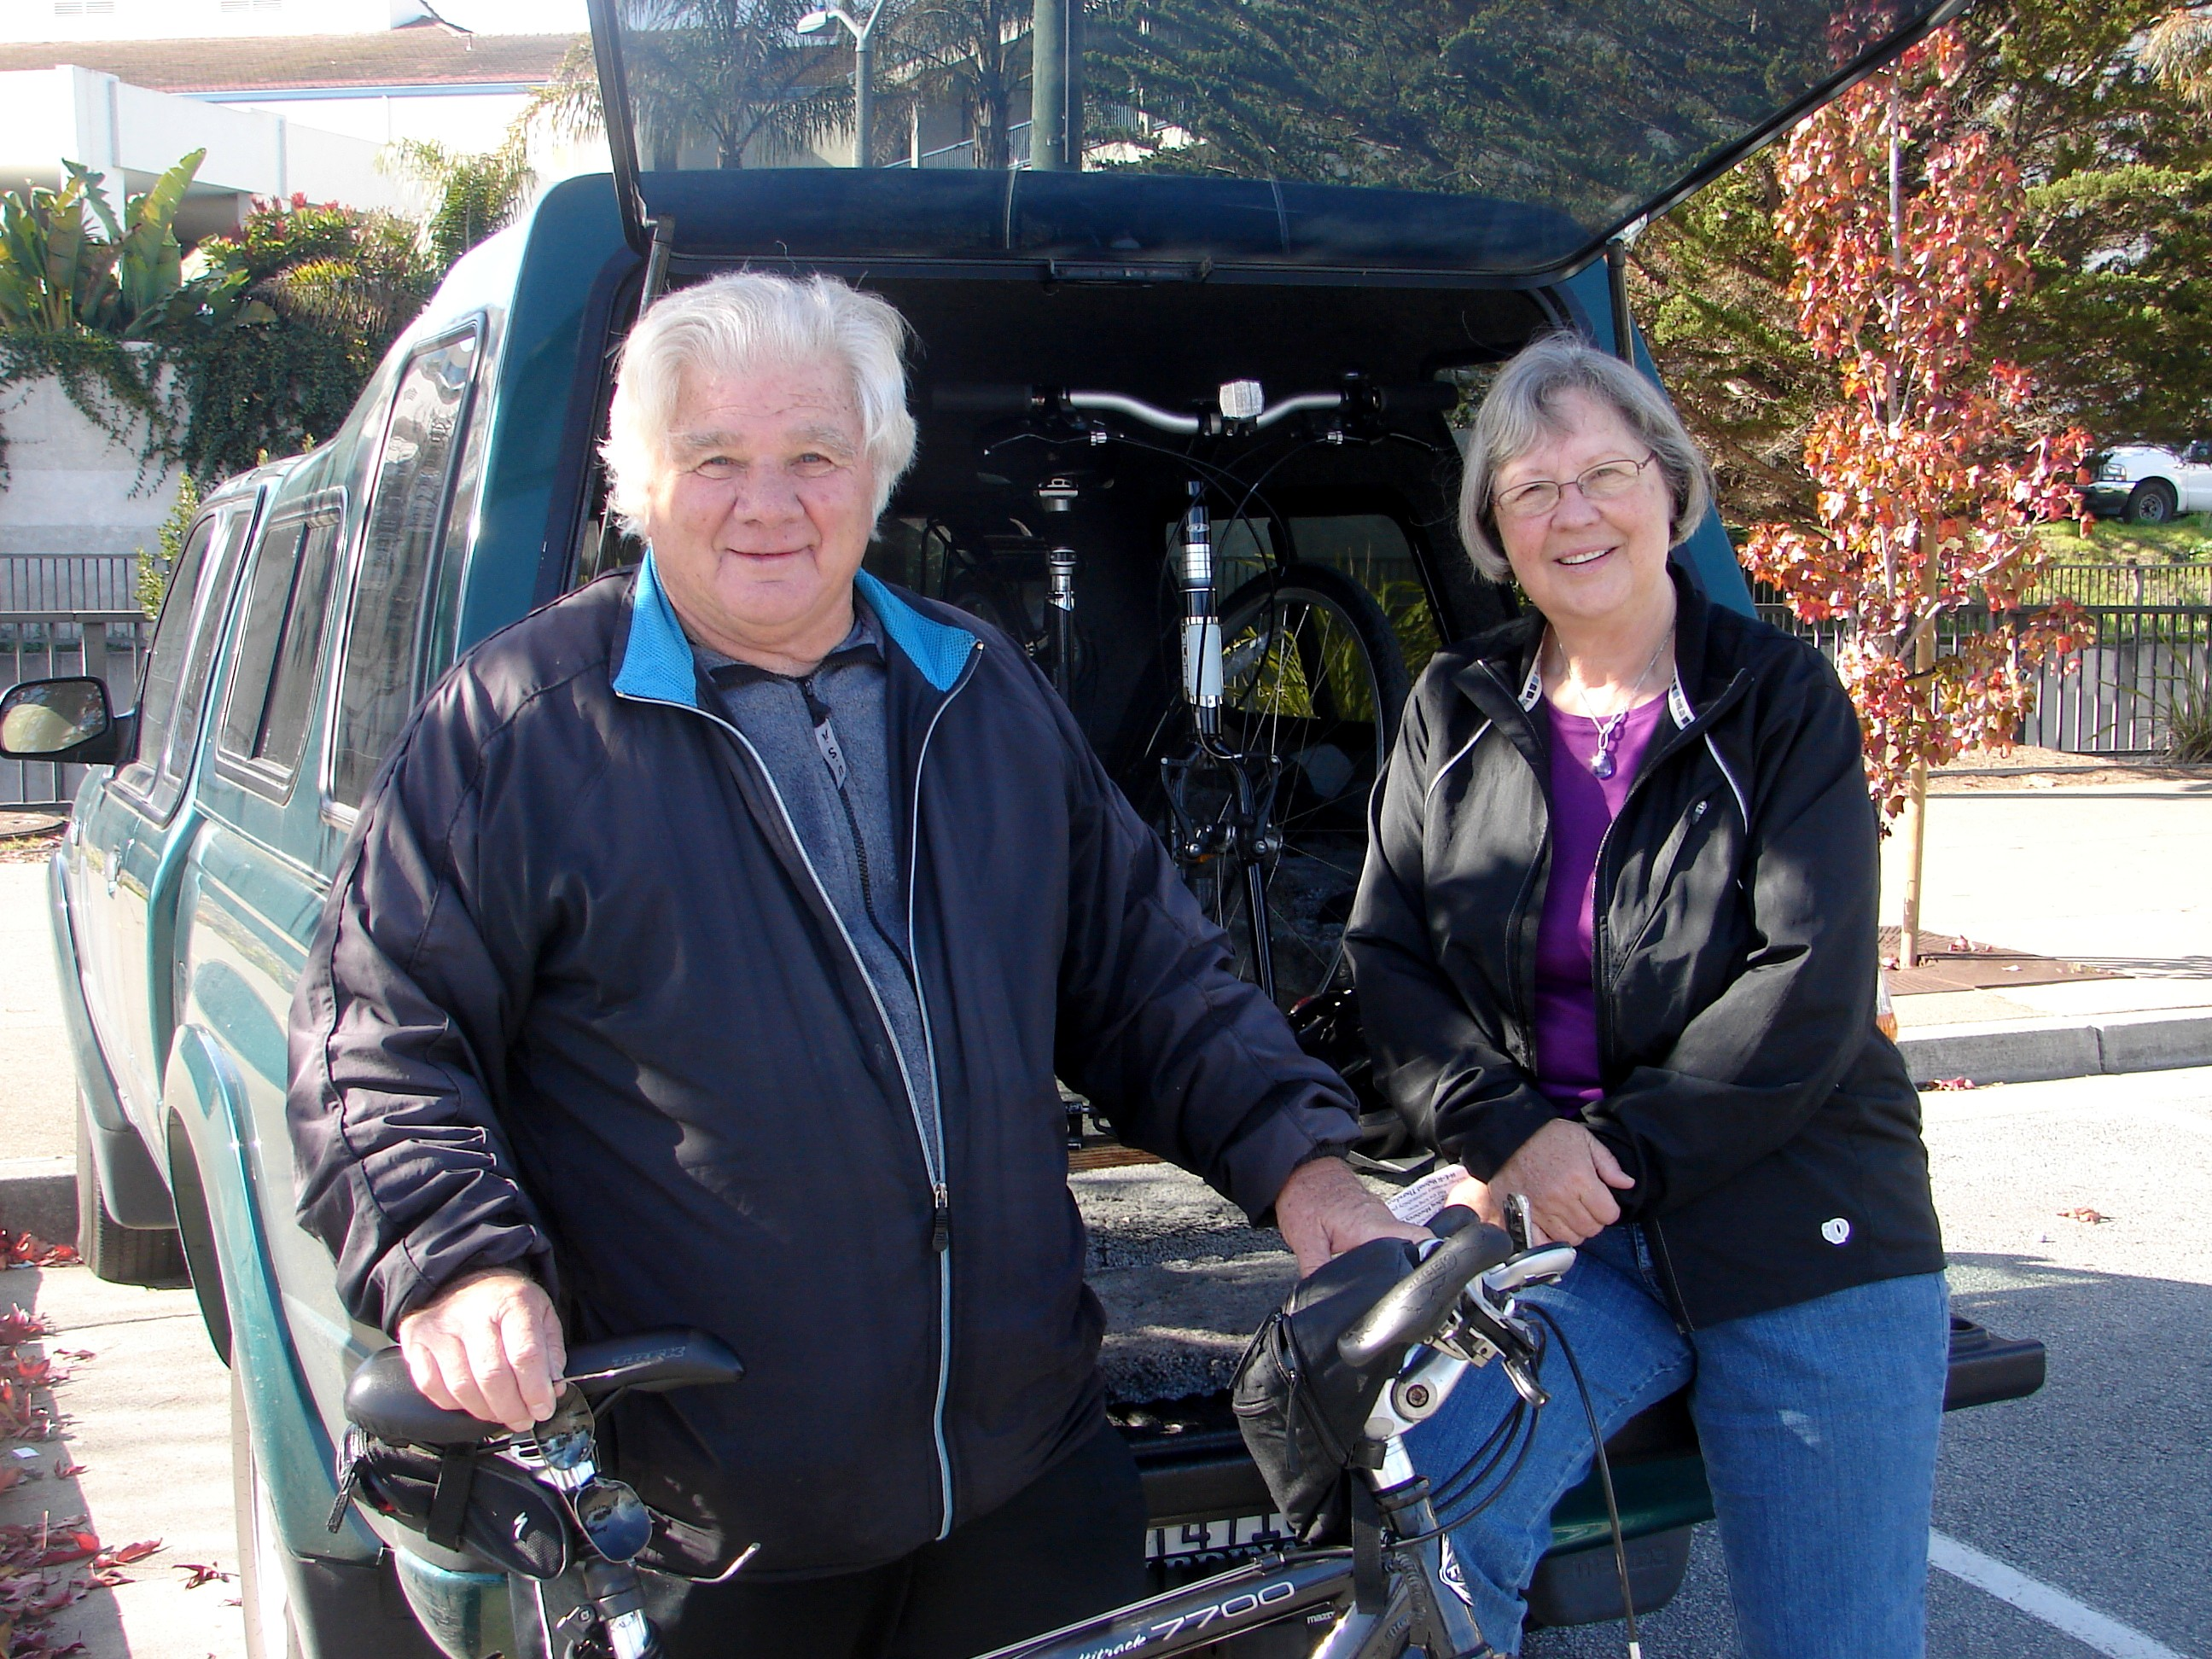 2nd Annual Intergenerational Ride 2013